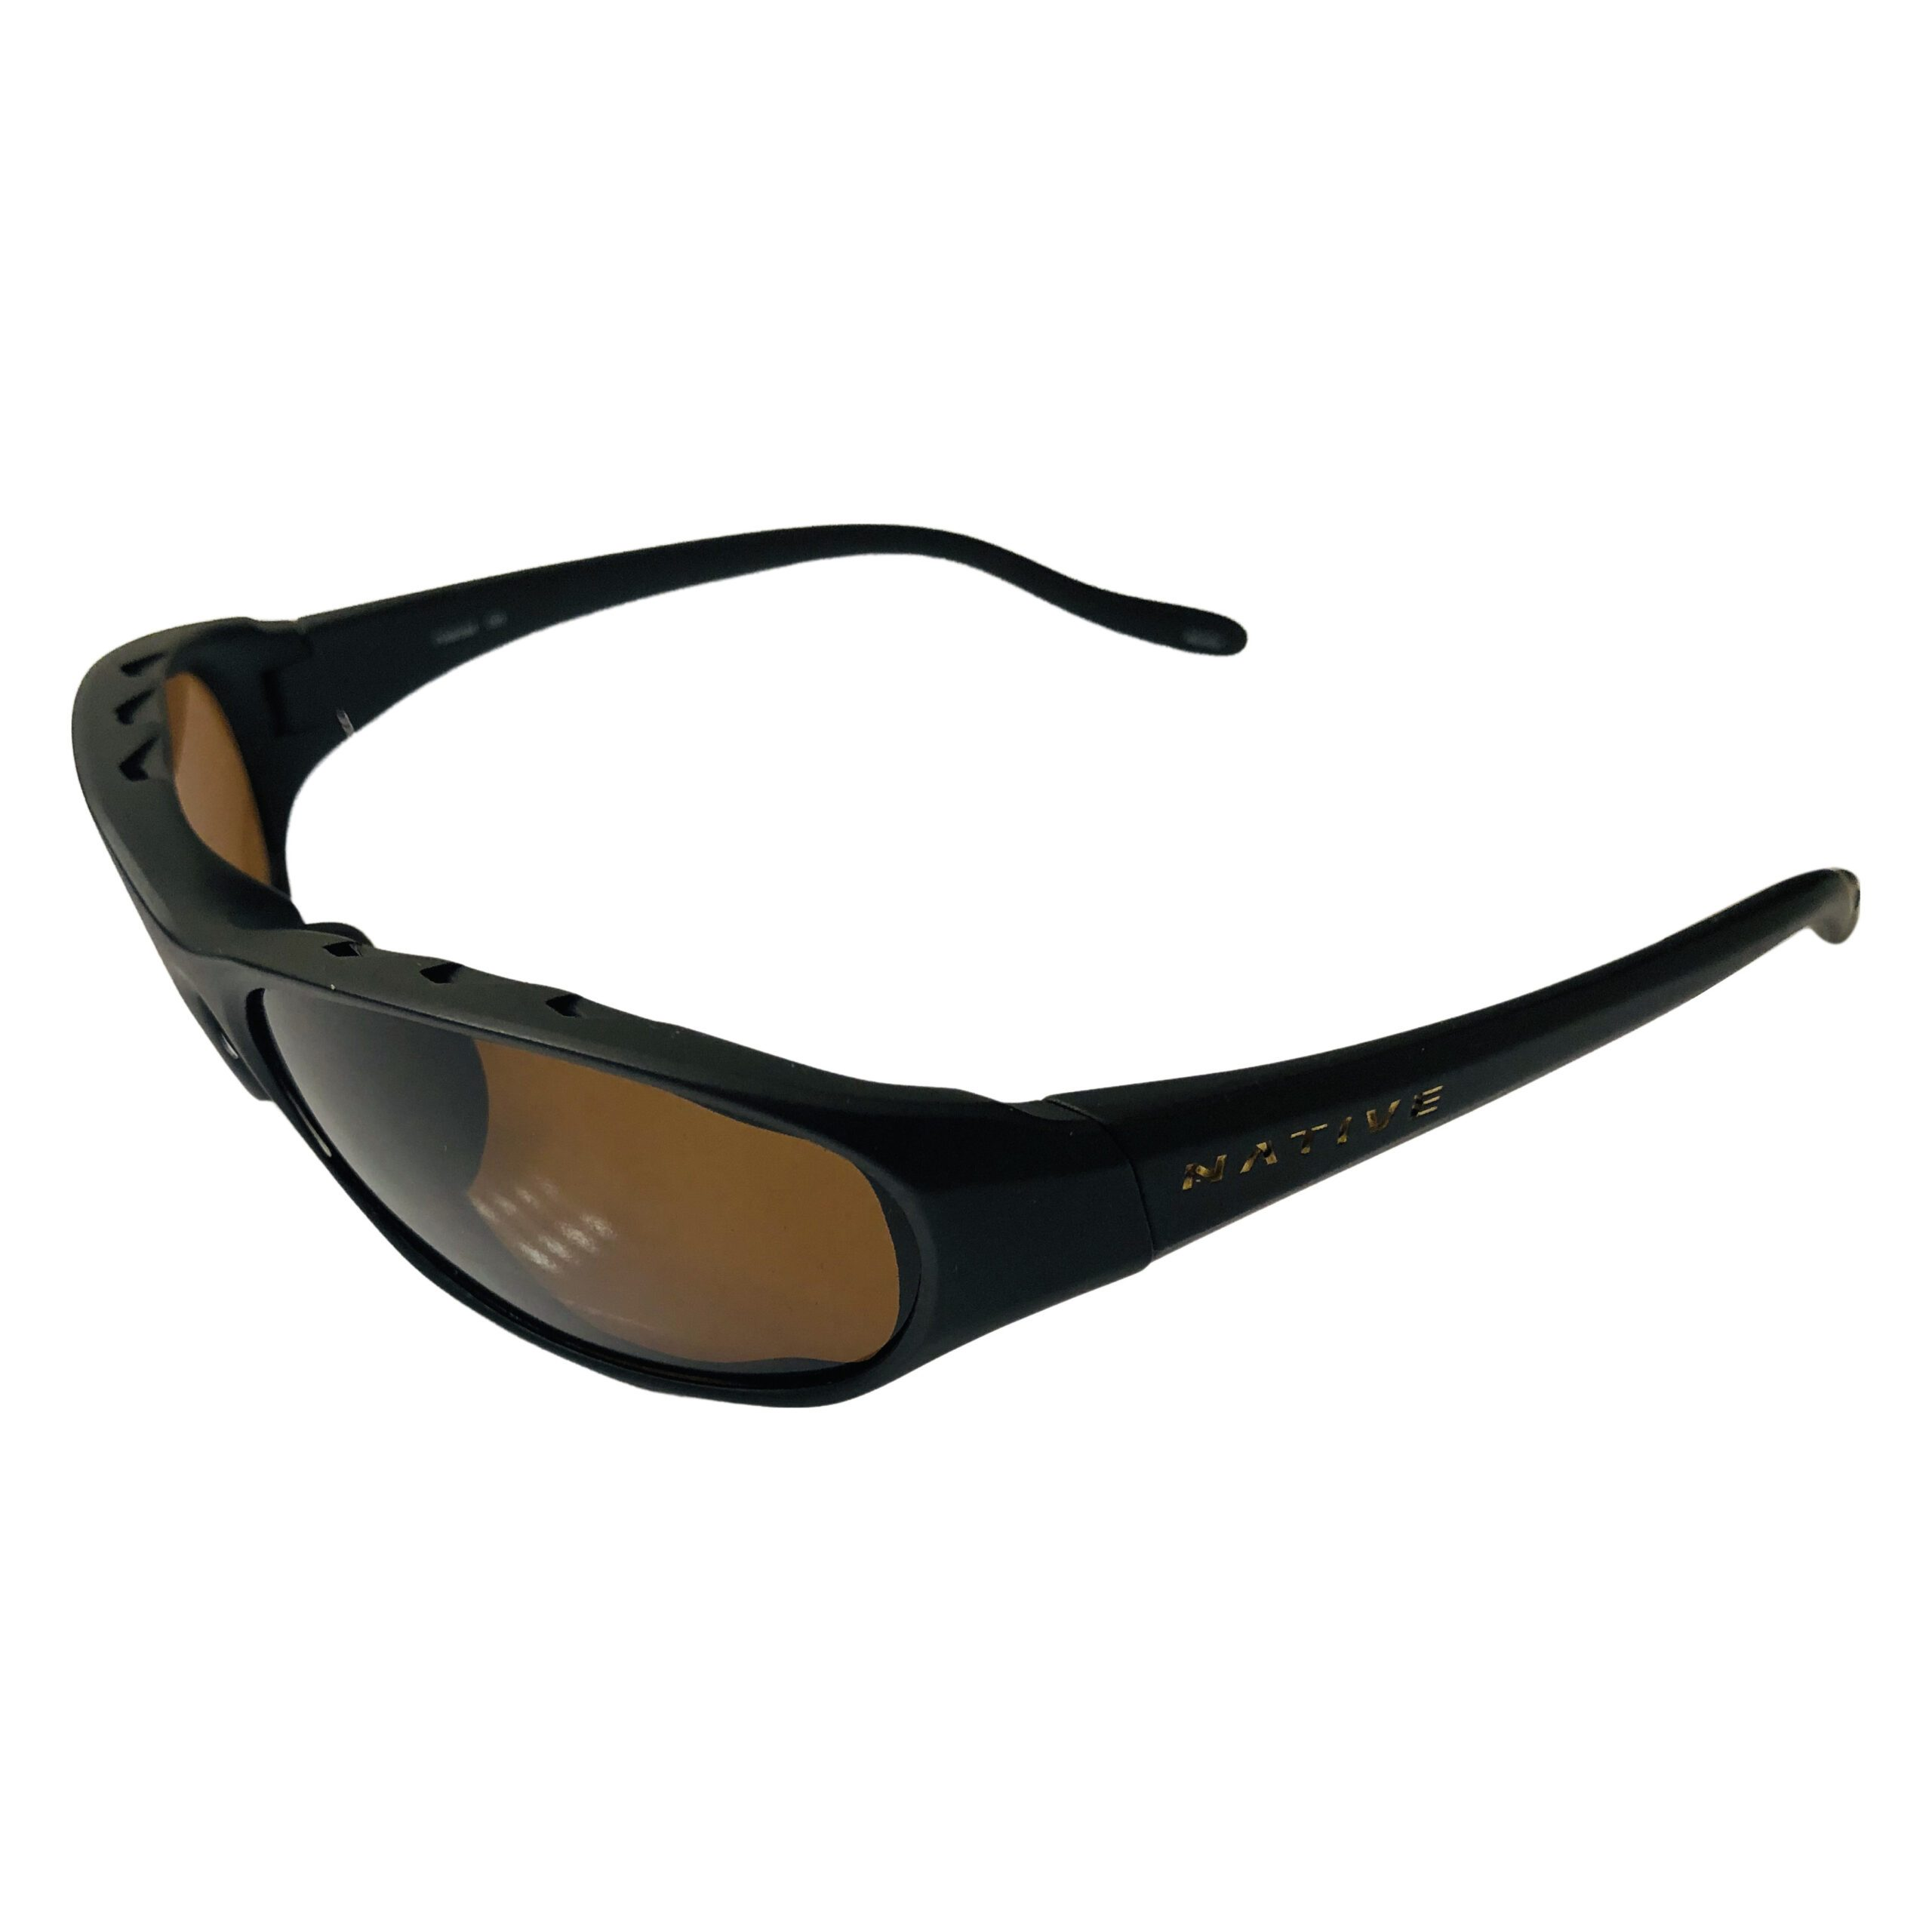 Native Eyewear Throttle Sunglasses - Matte Black Frame - Polarized Brown Lens